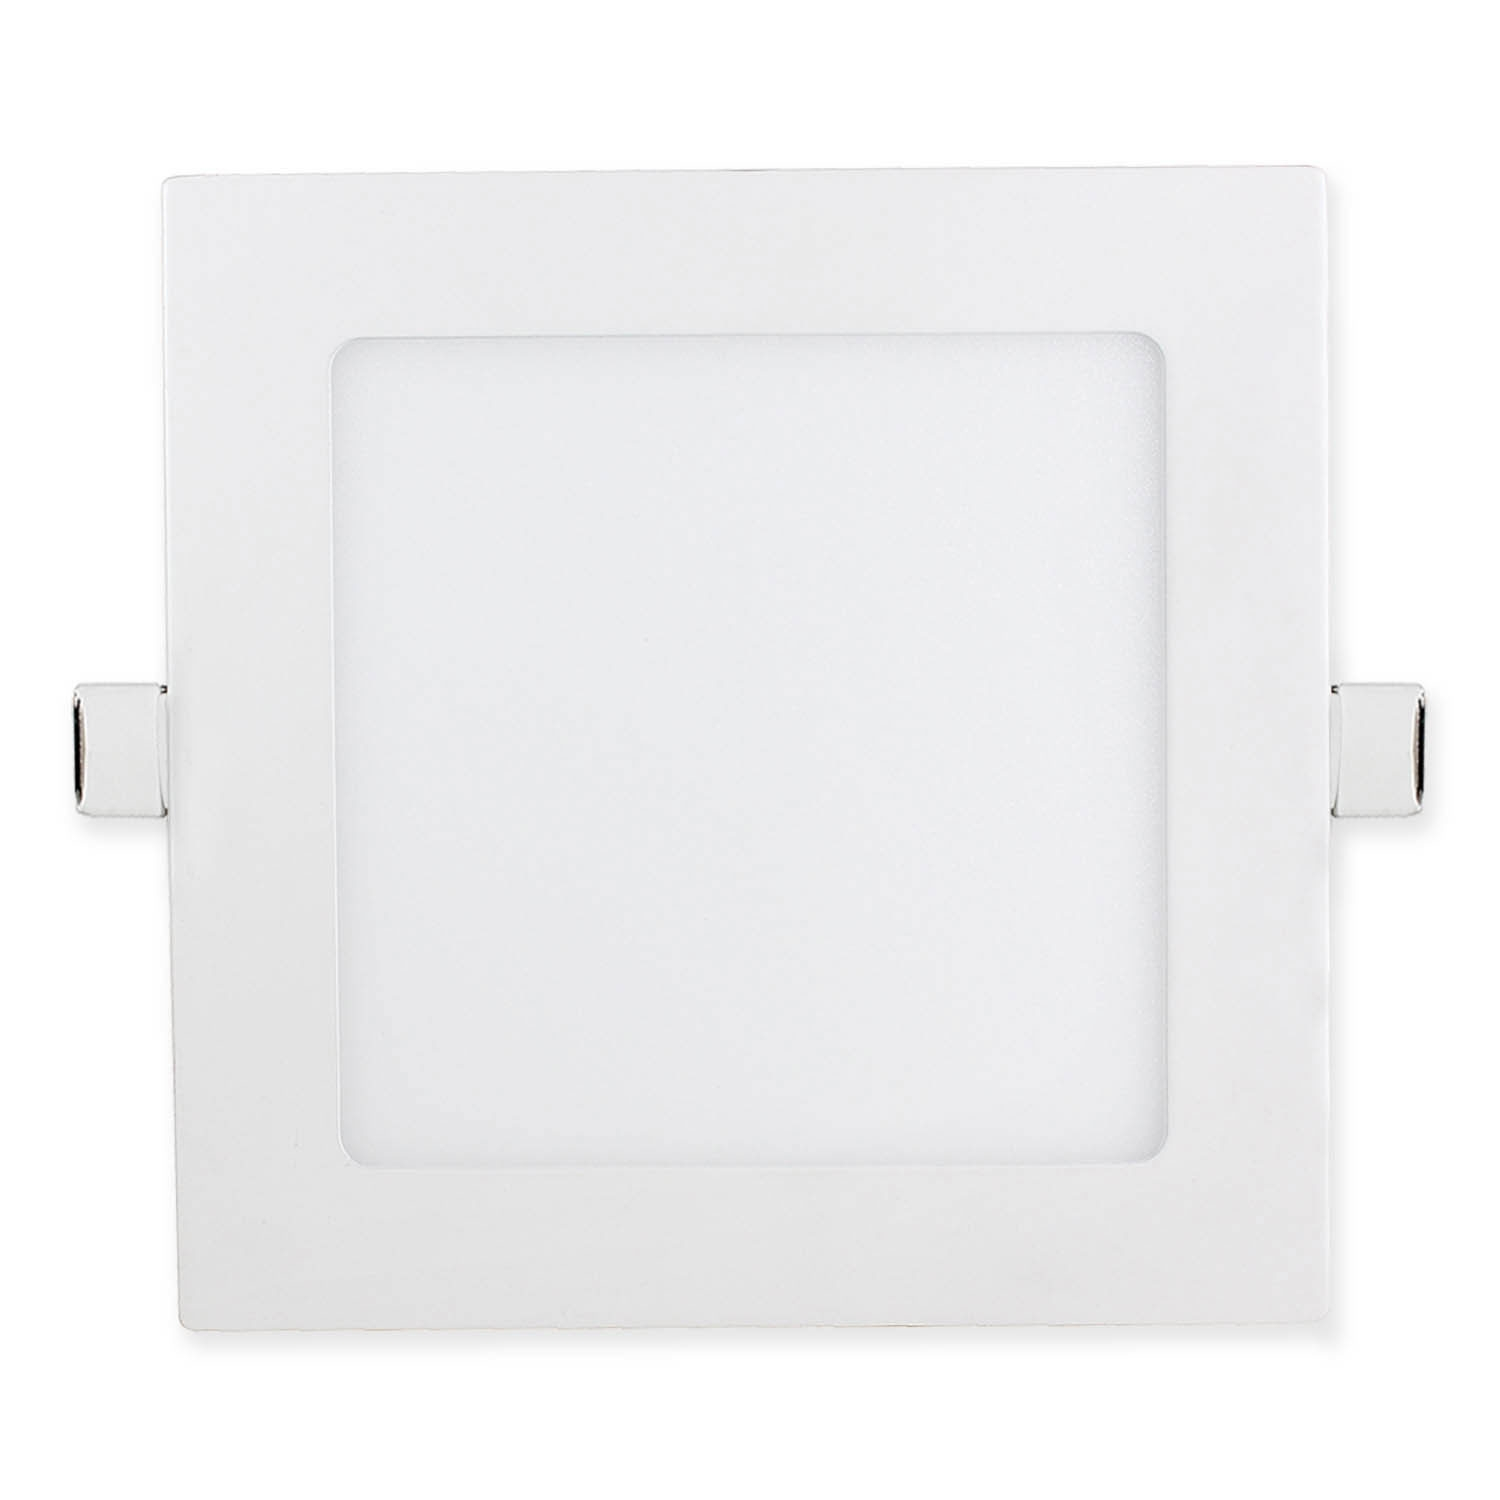 Focos downlight led cocina finest downlight led with - Iluminacion led cocina downlight ...